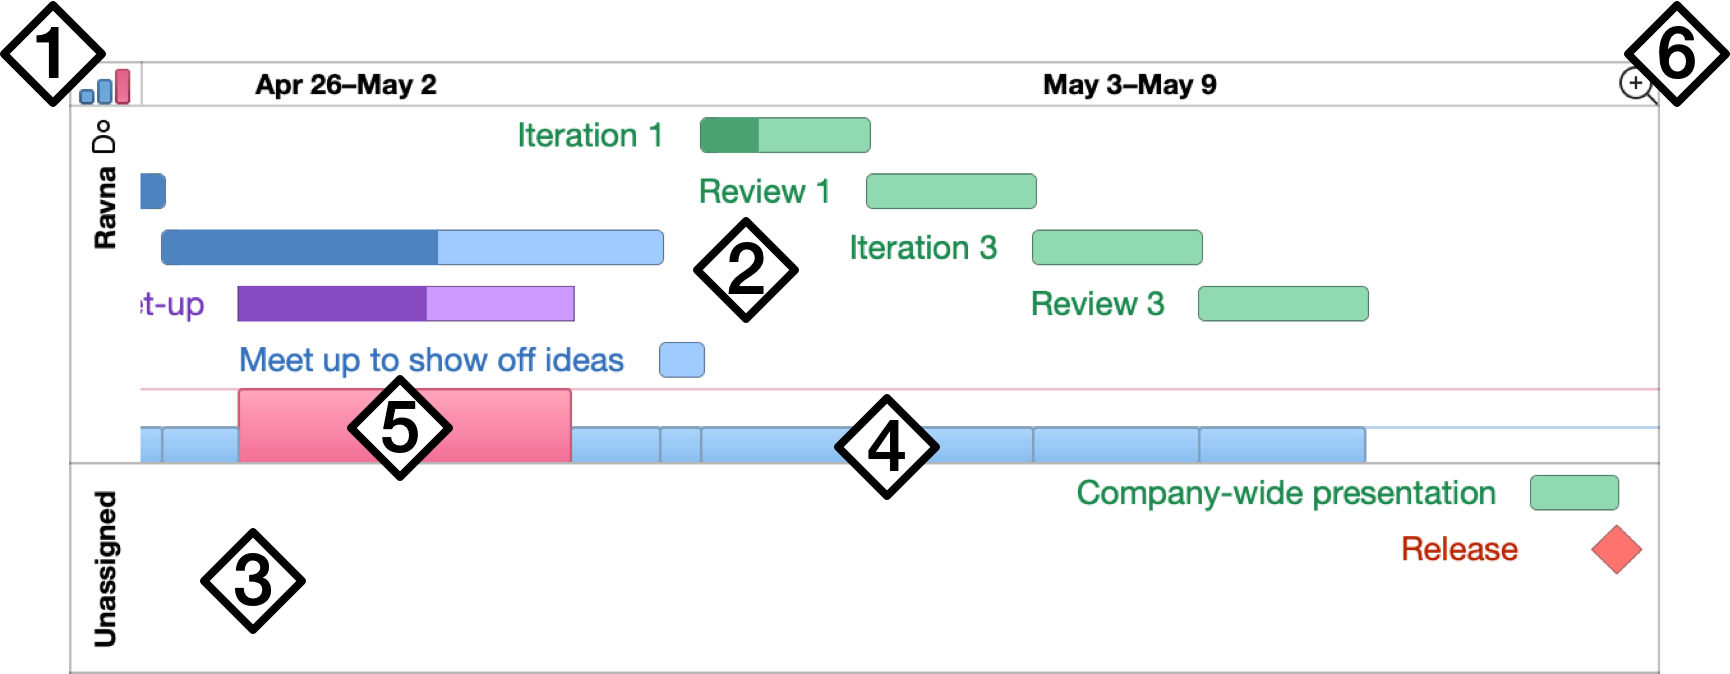 An overview of resources in the resource timeline.